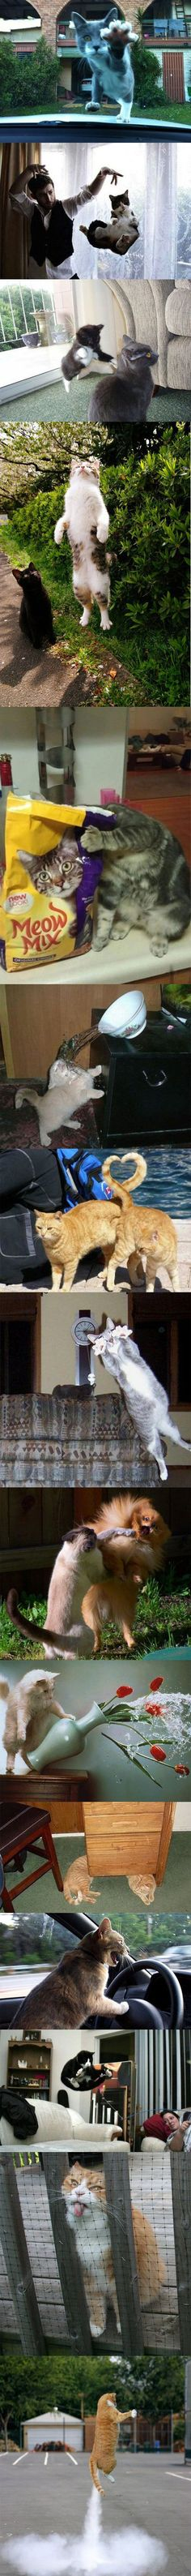 Here are some perfectly timed cat pictures snapped at the right moment.